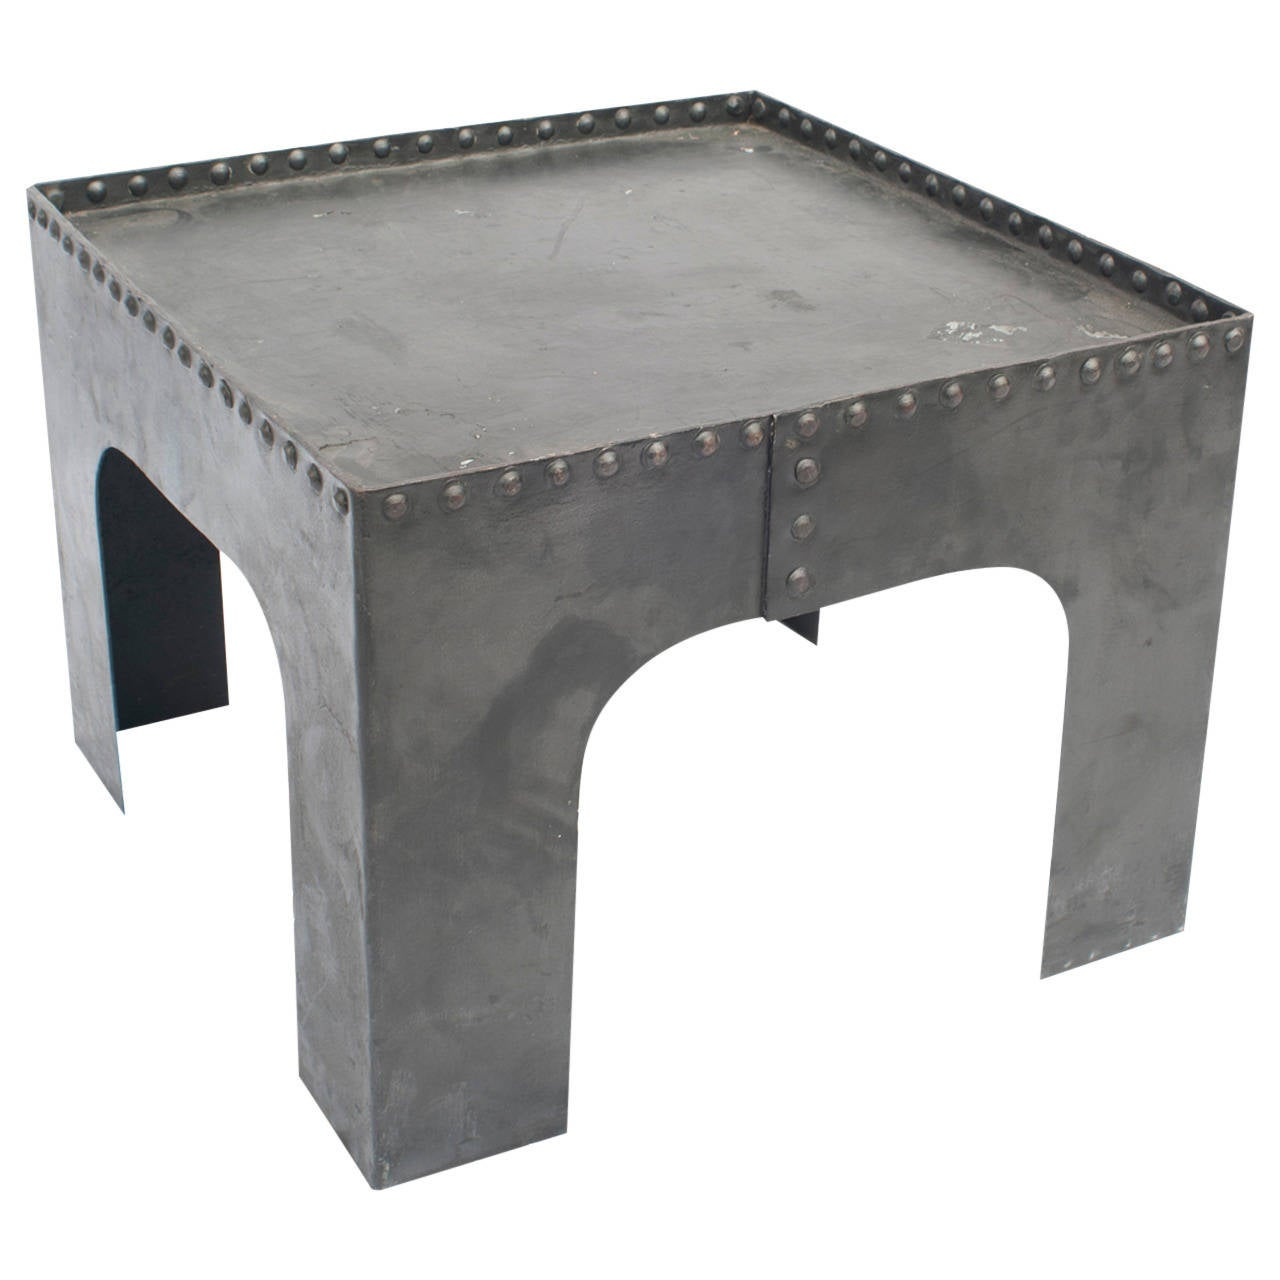 Small square industrial metal coffee table for sale at 1stdibs Metal square coffee table